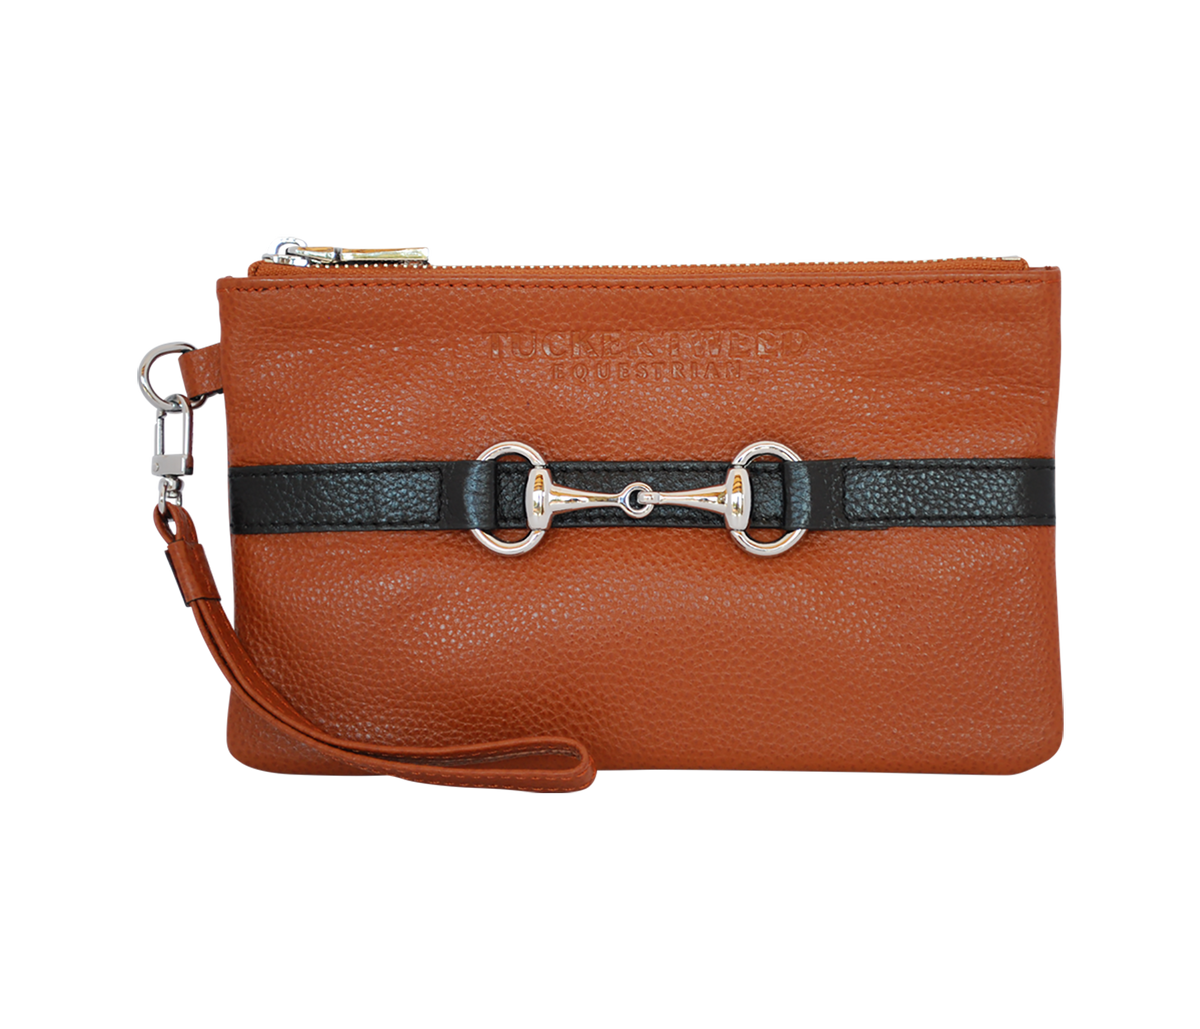 Tucker Tweed Leather Handbags Chestnut/Black The Wellington Wristlet